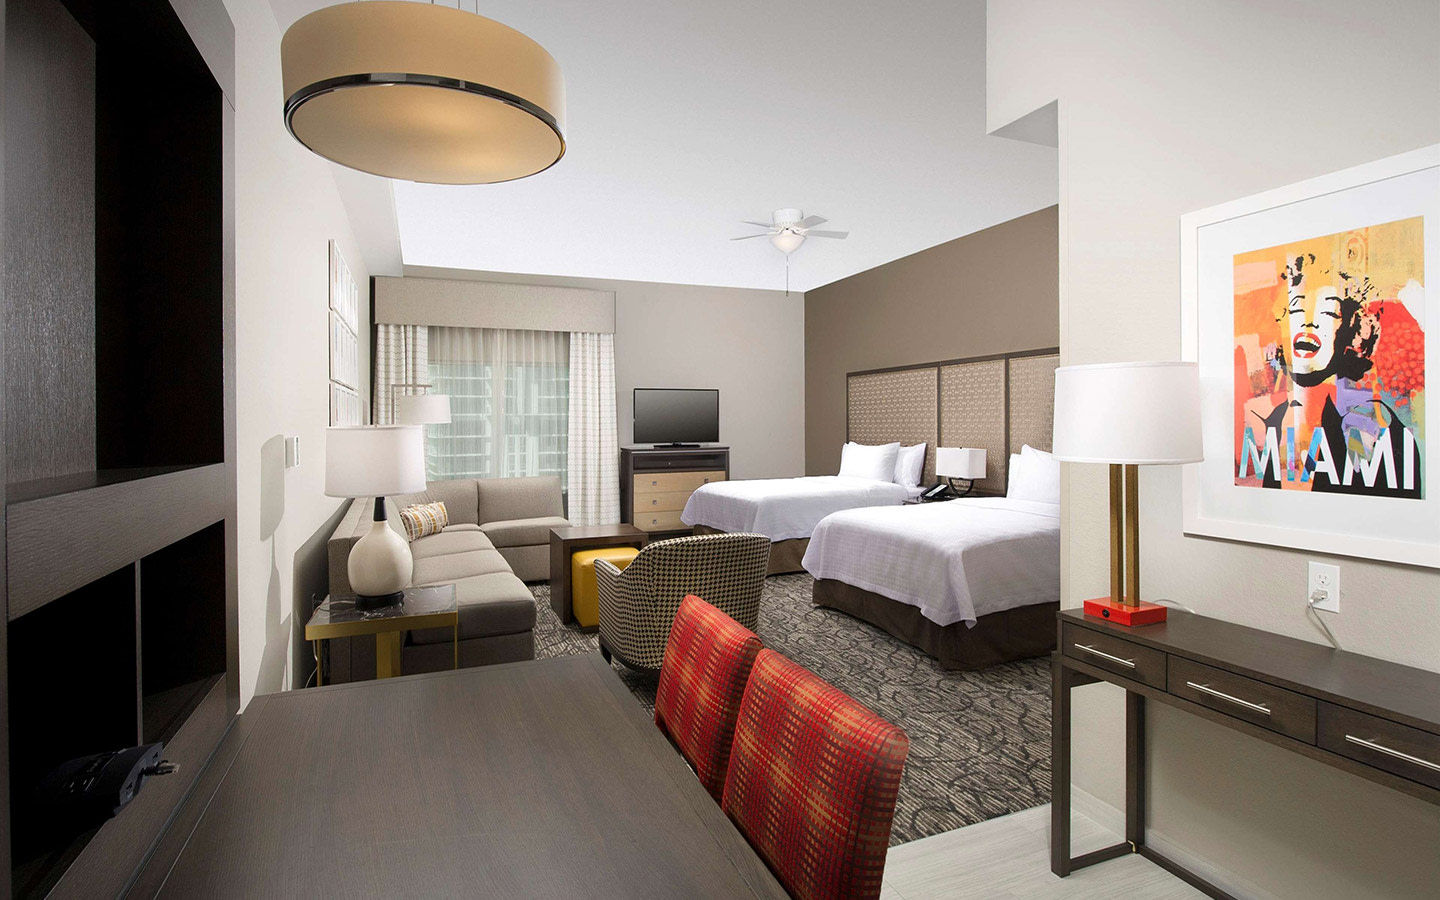 Give yourself some space at Homewood Suites Miami